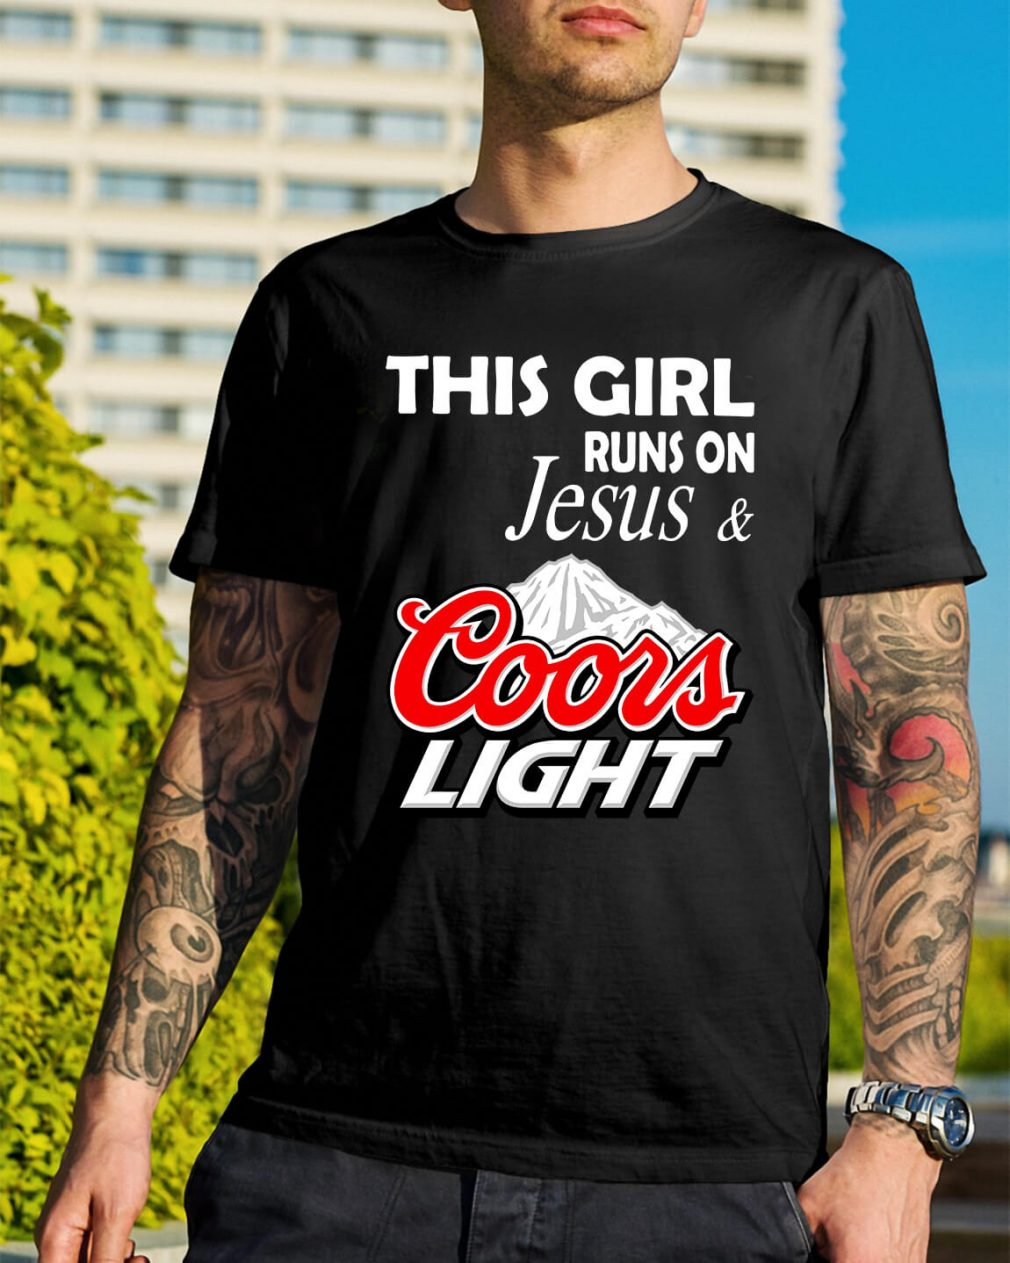 This girl runs on Jesus and Coors Light shirt